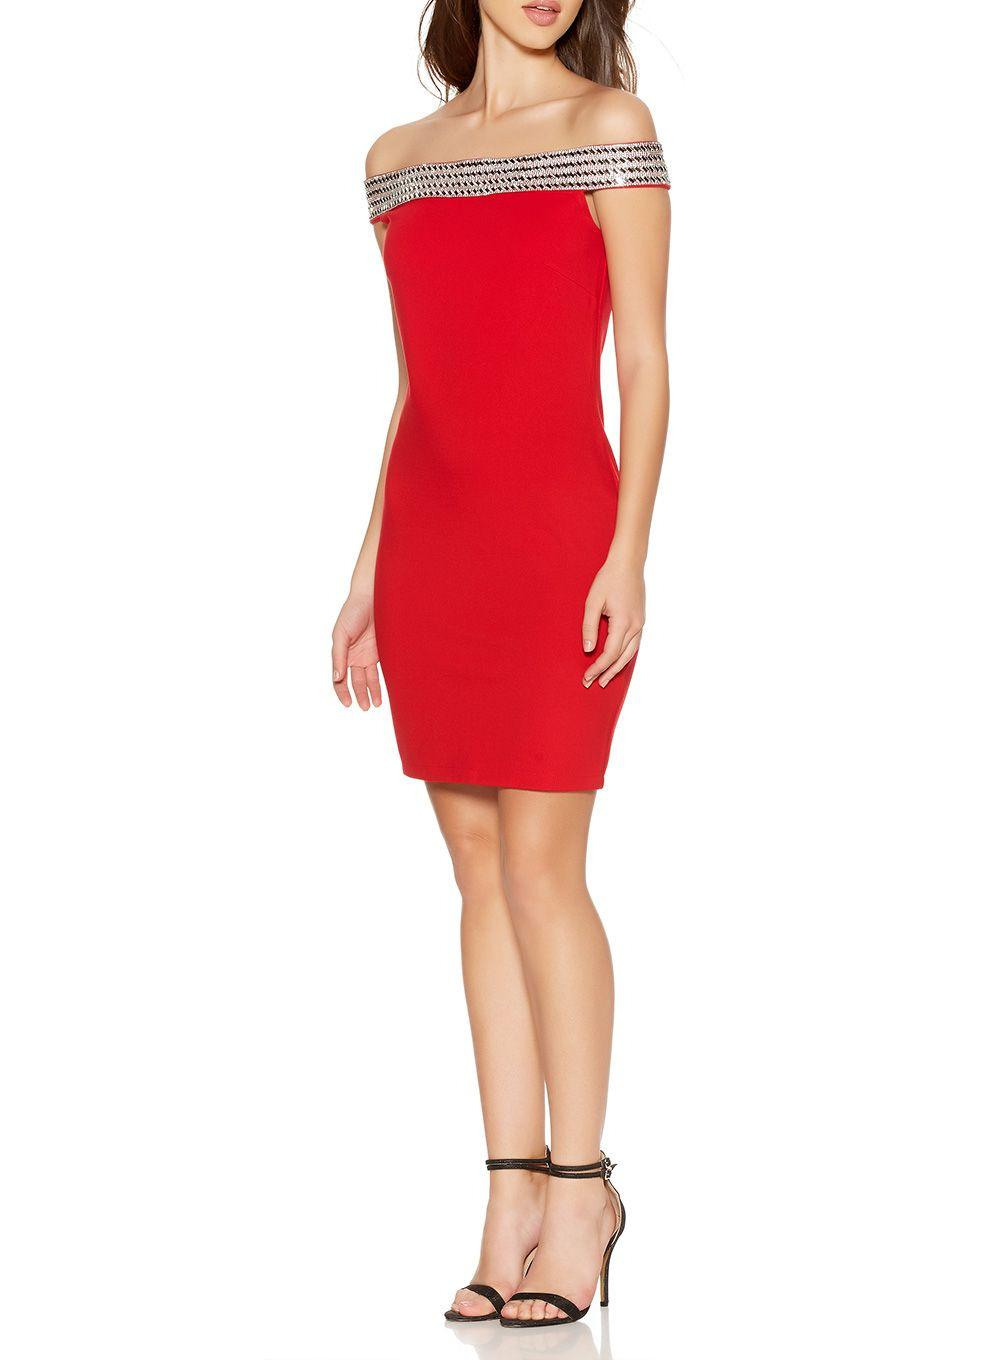 List it test dress what does bodycon mean traditional